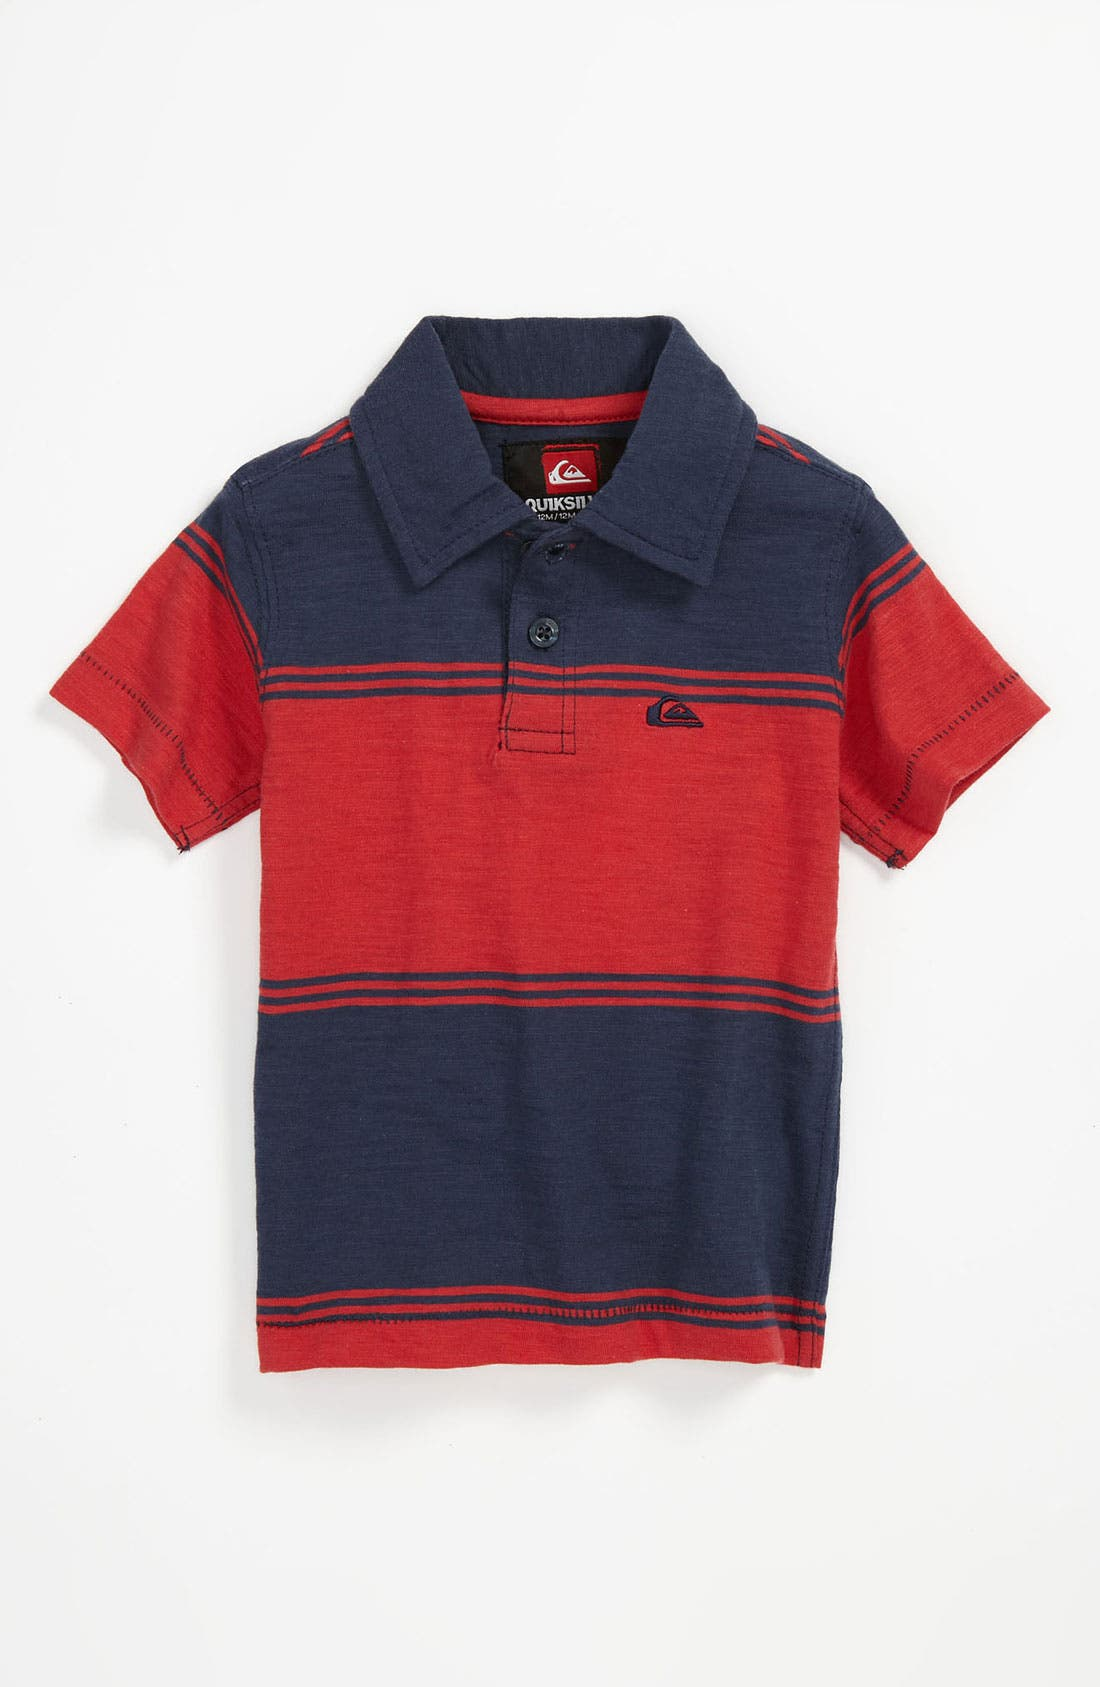 Alternate Image 1 Selected - Quiksilver 'Big Cheese' Stripe Polo (Baby)